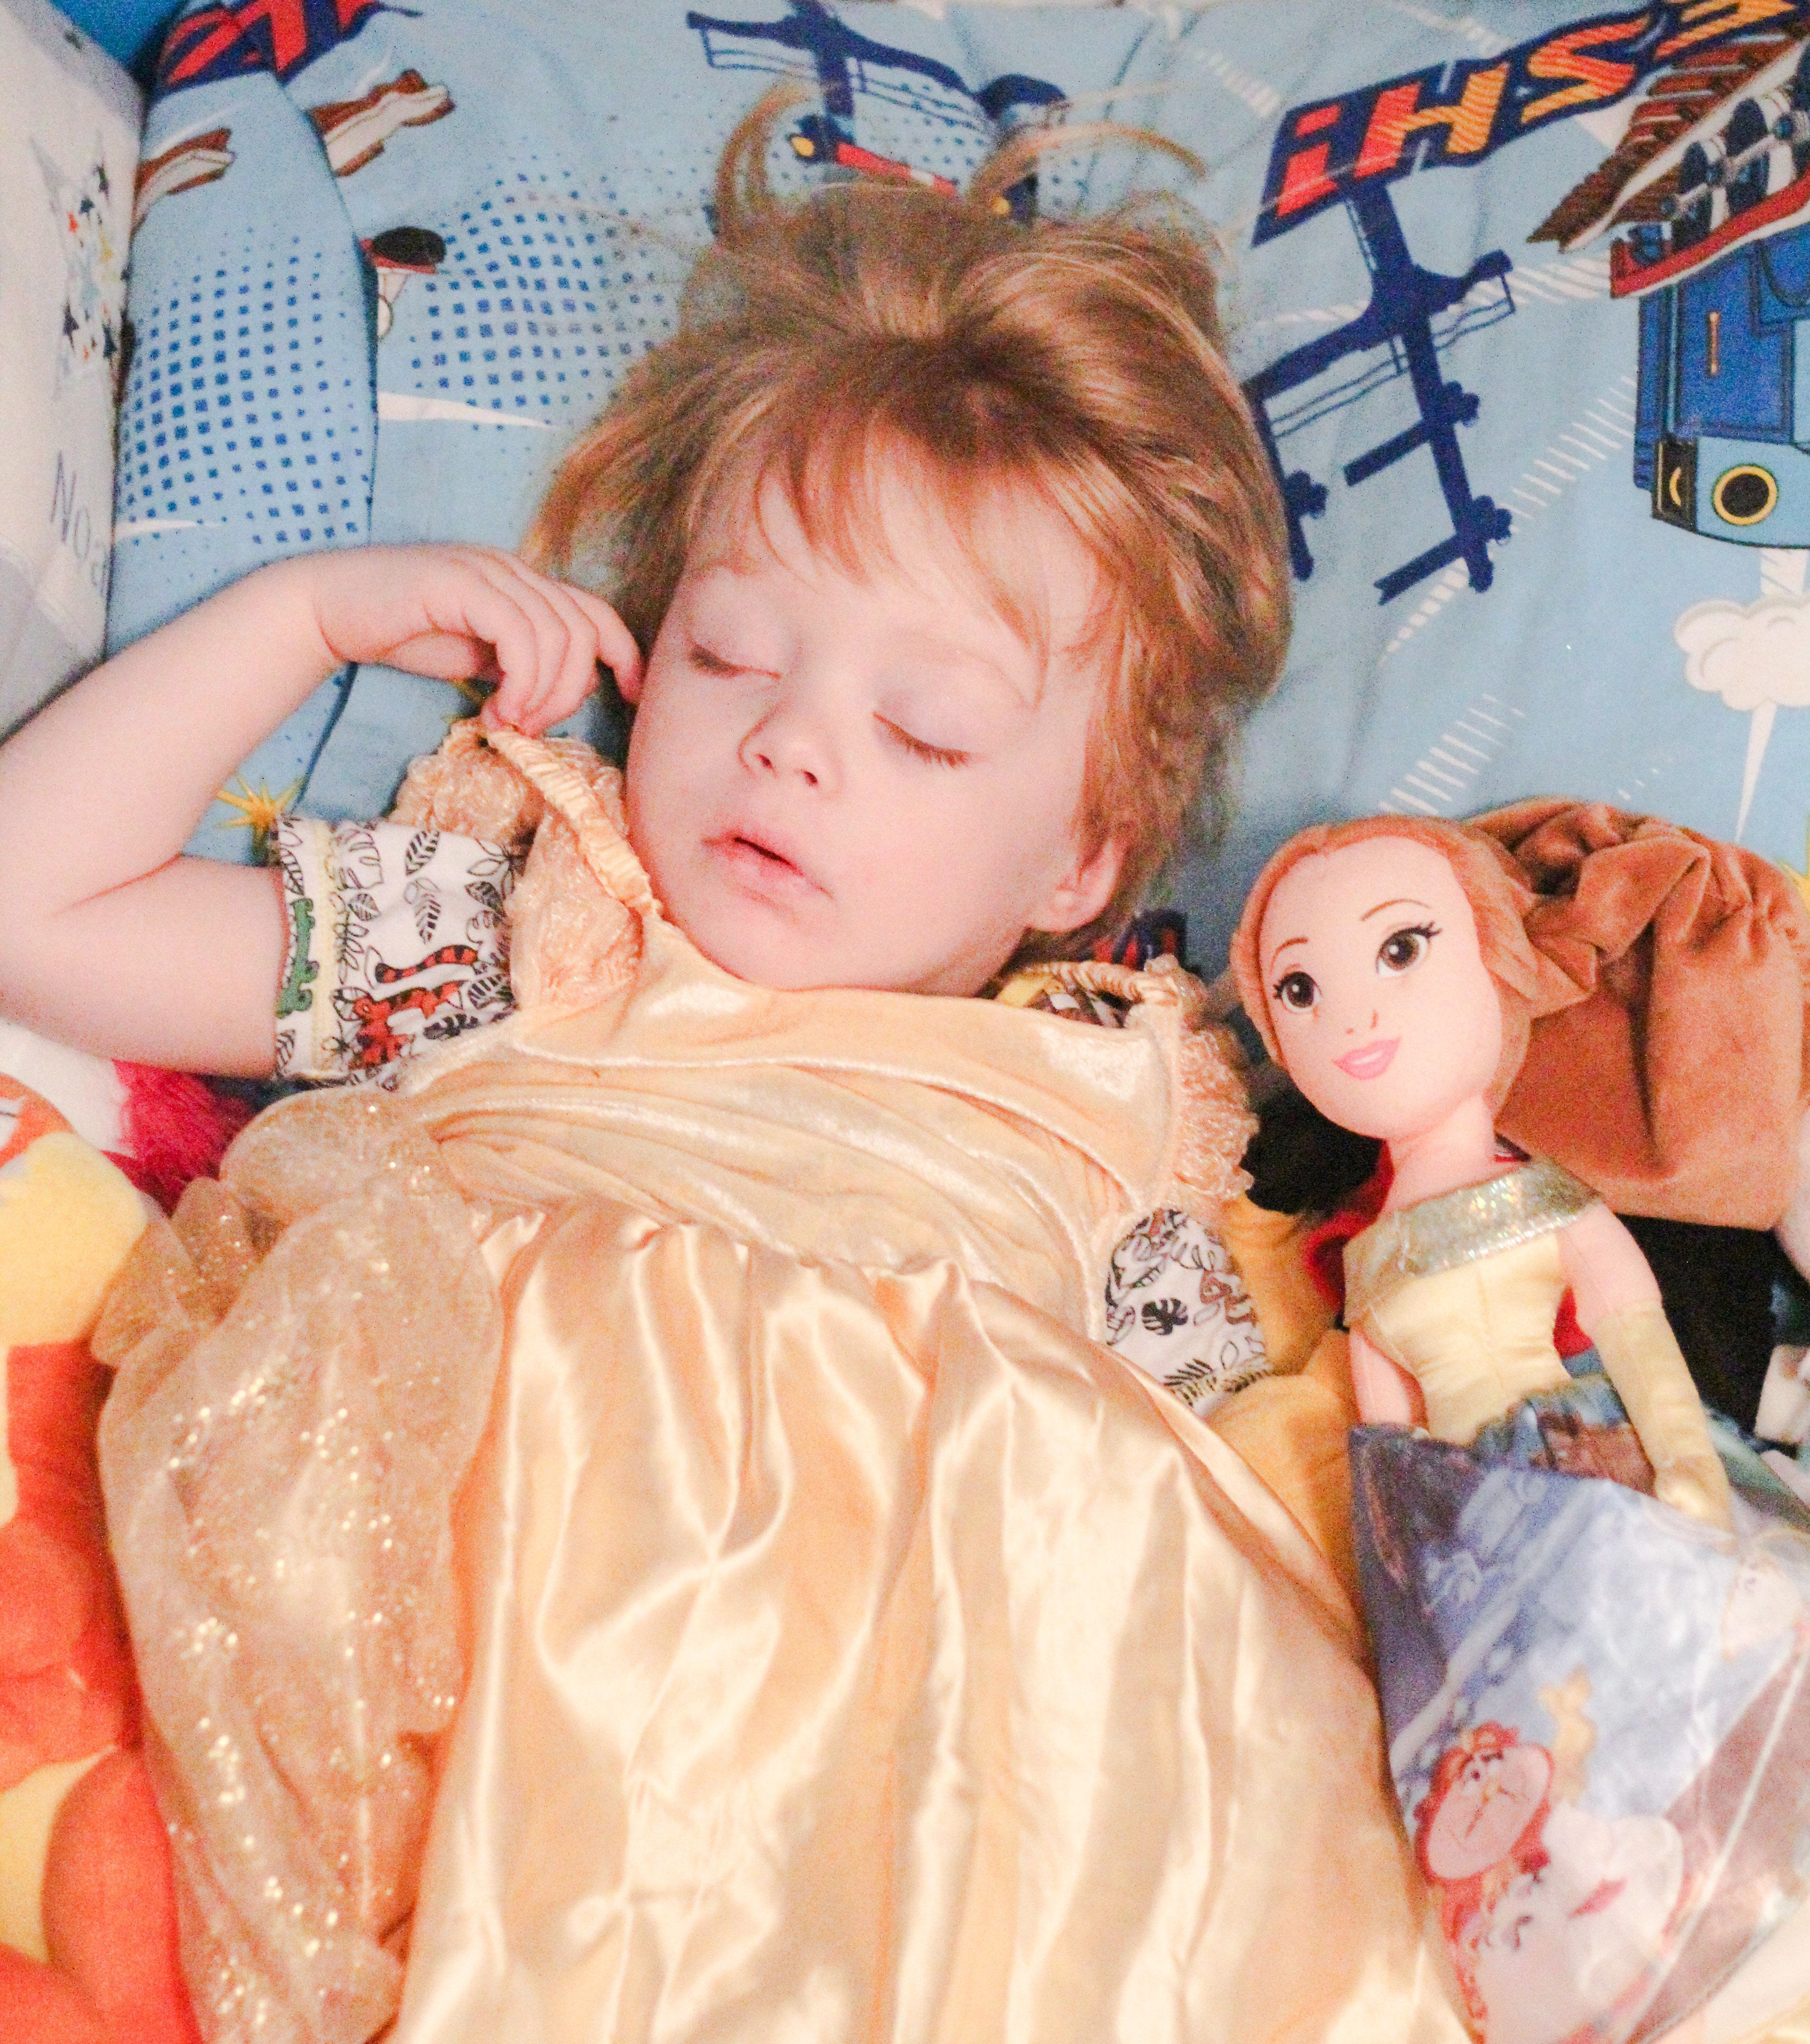 Disneyland Paris apologises after banning boy from princess experience